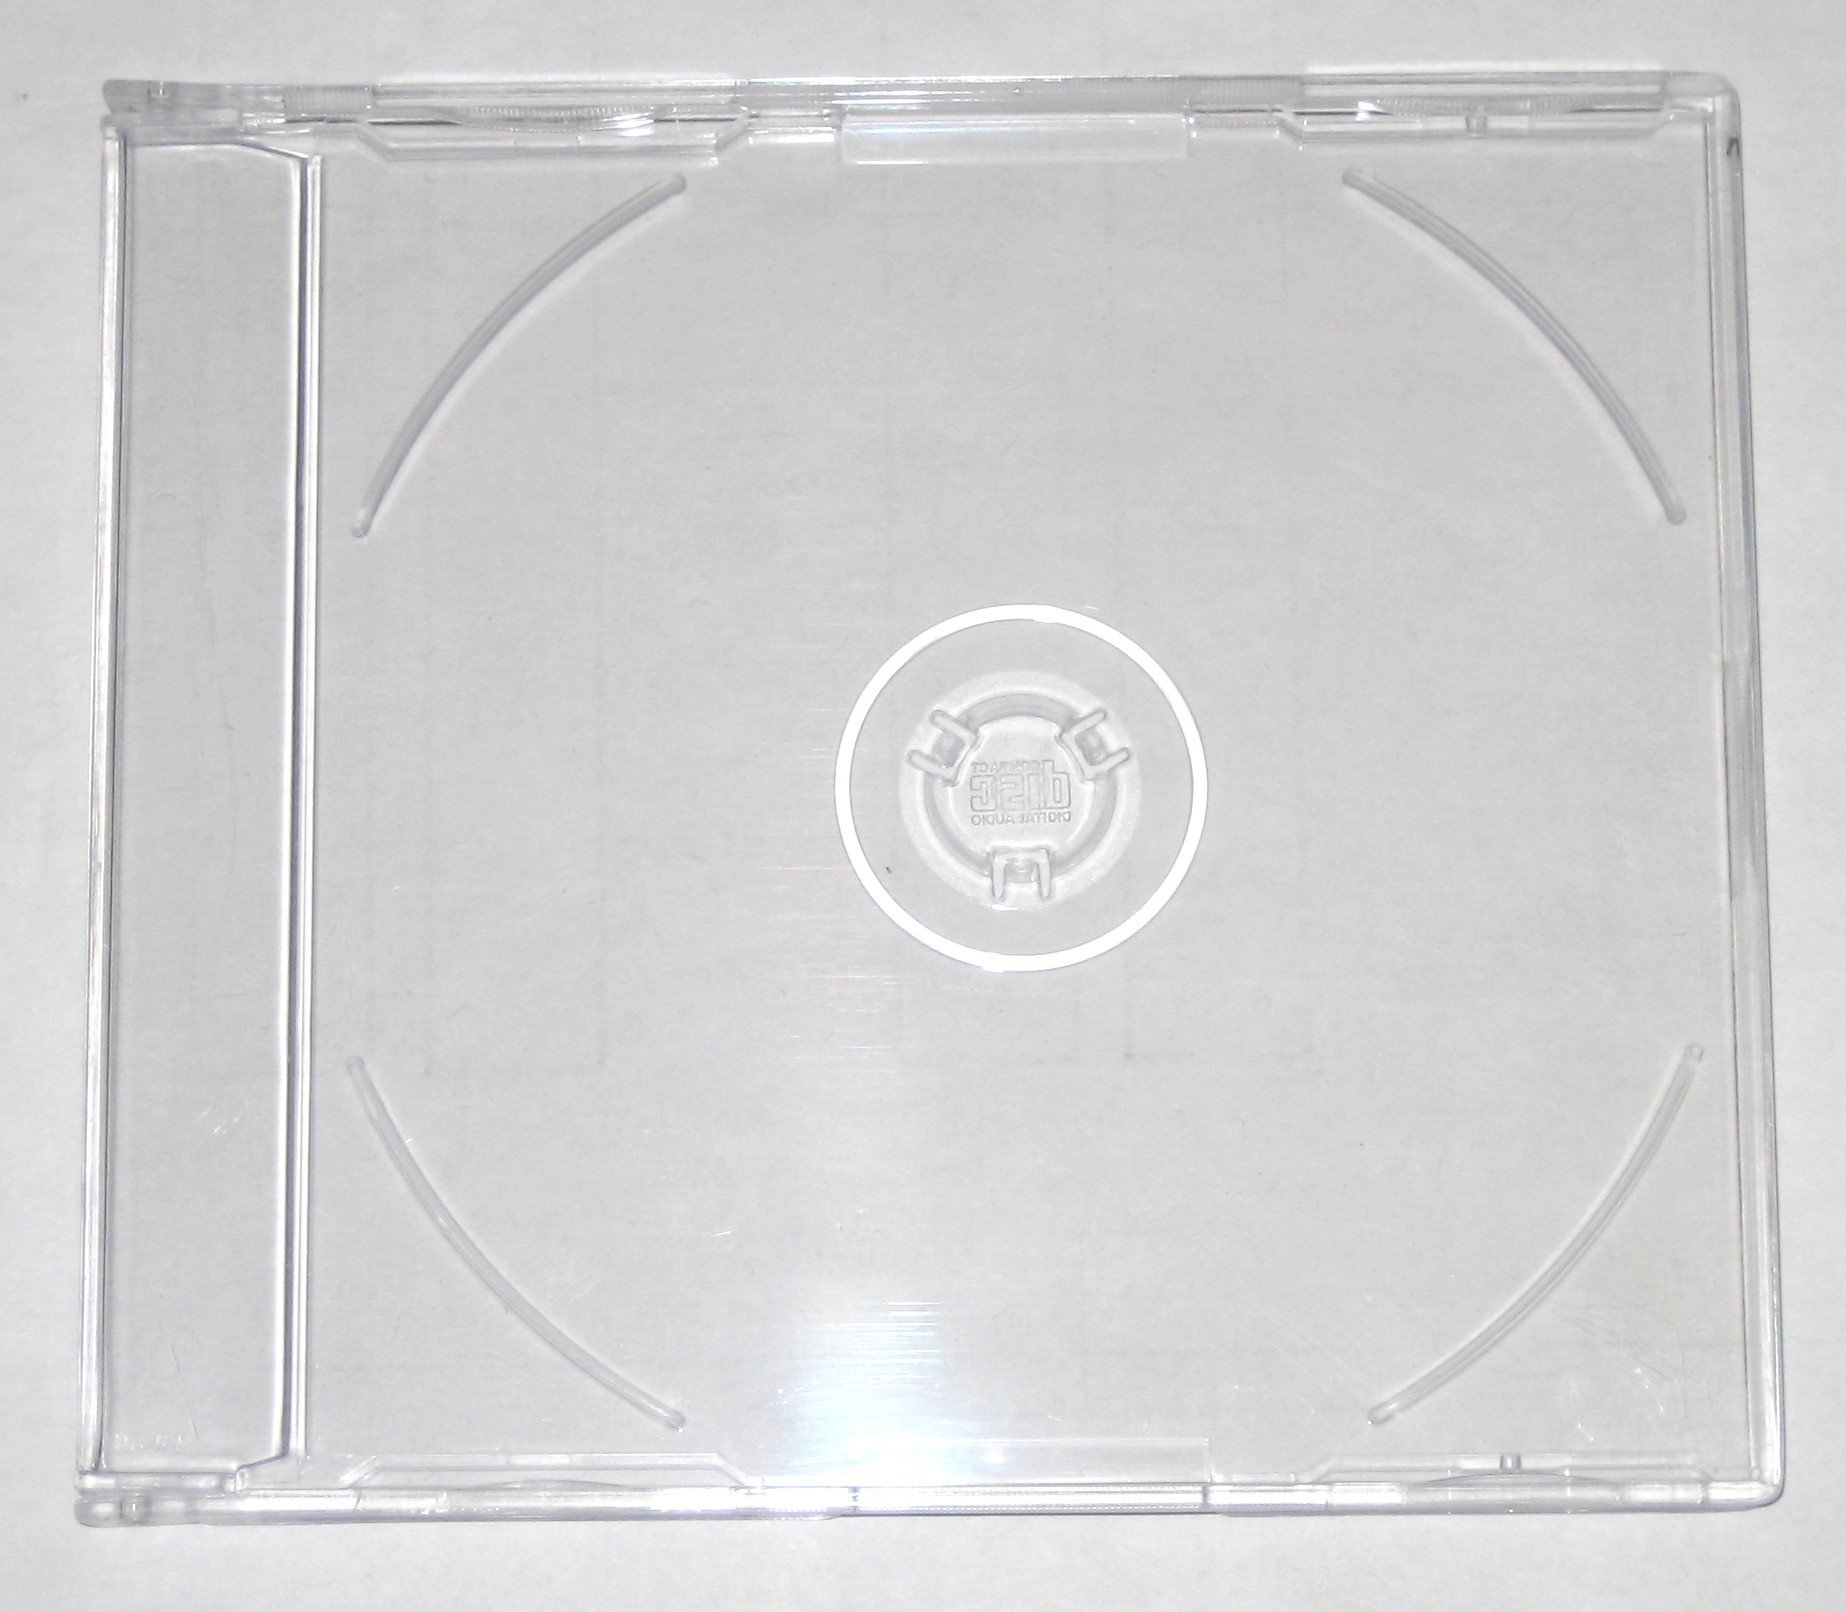 7mm MAXI SLIM CD JEWEL J CARD CASE W/ SUPER CLEAR TRAY, 7.2MM, PSC17, 200 PIECES/CASE